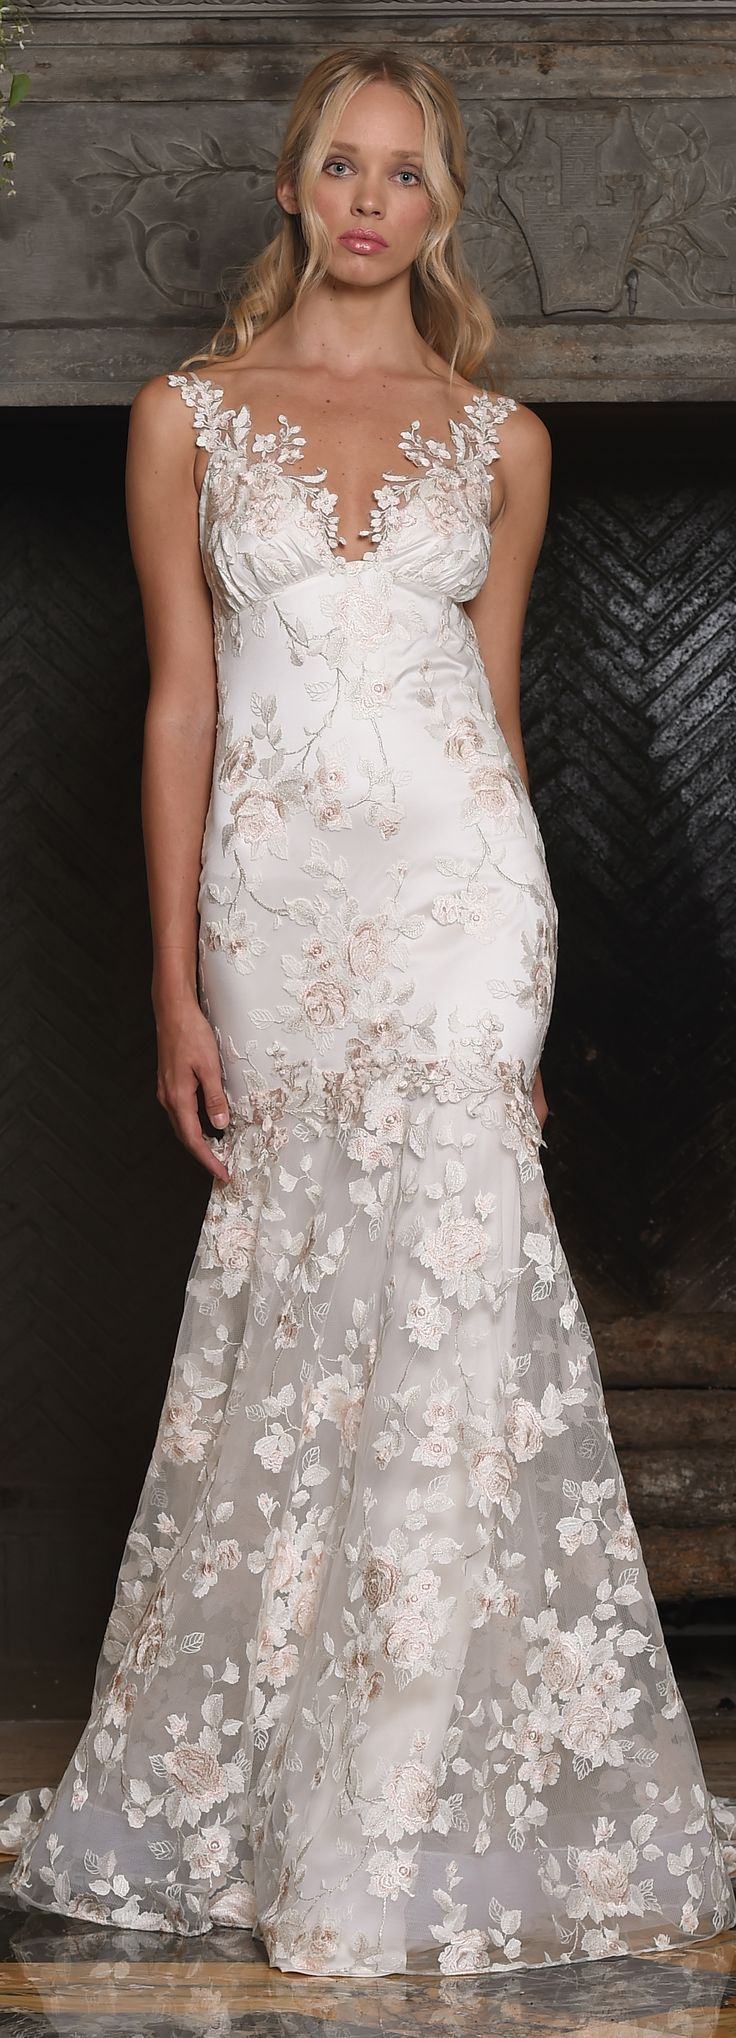 April wedding dress by Claire Pettibone from The Four Seasons couture collection.